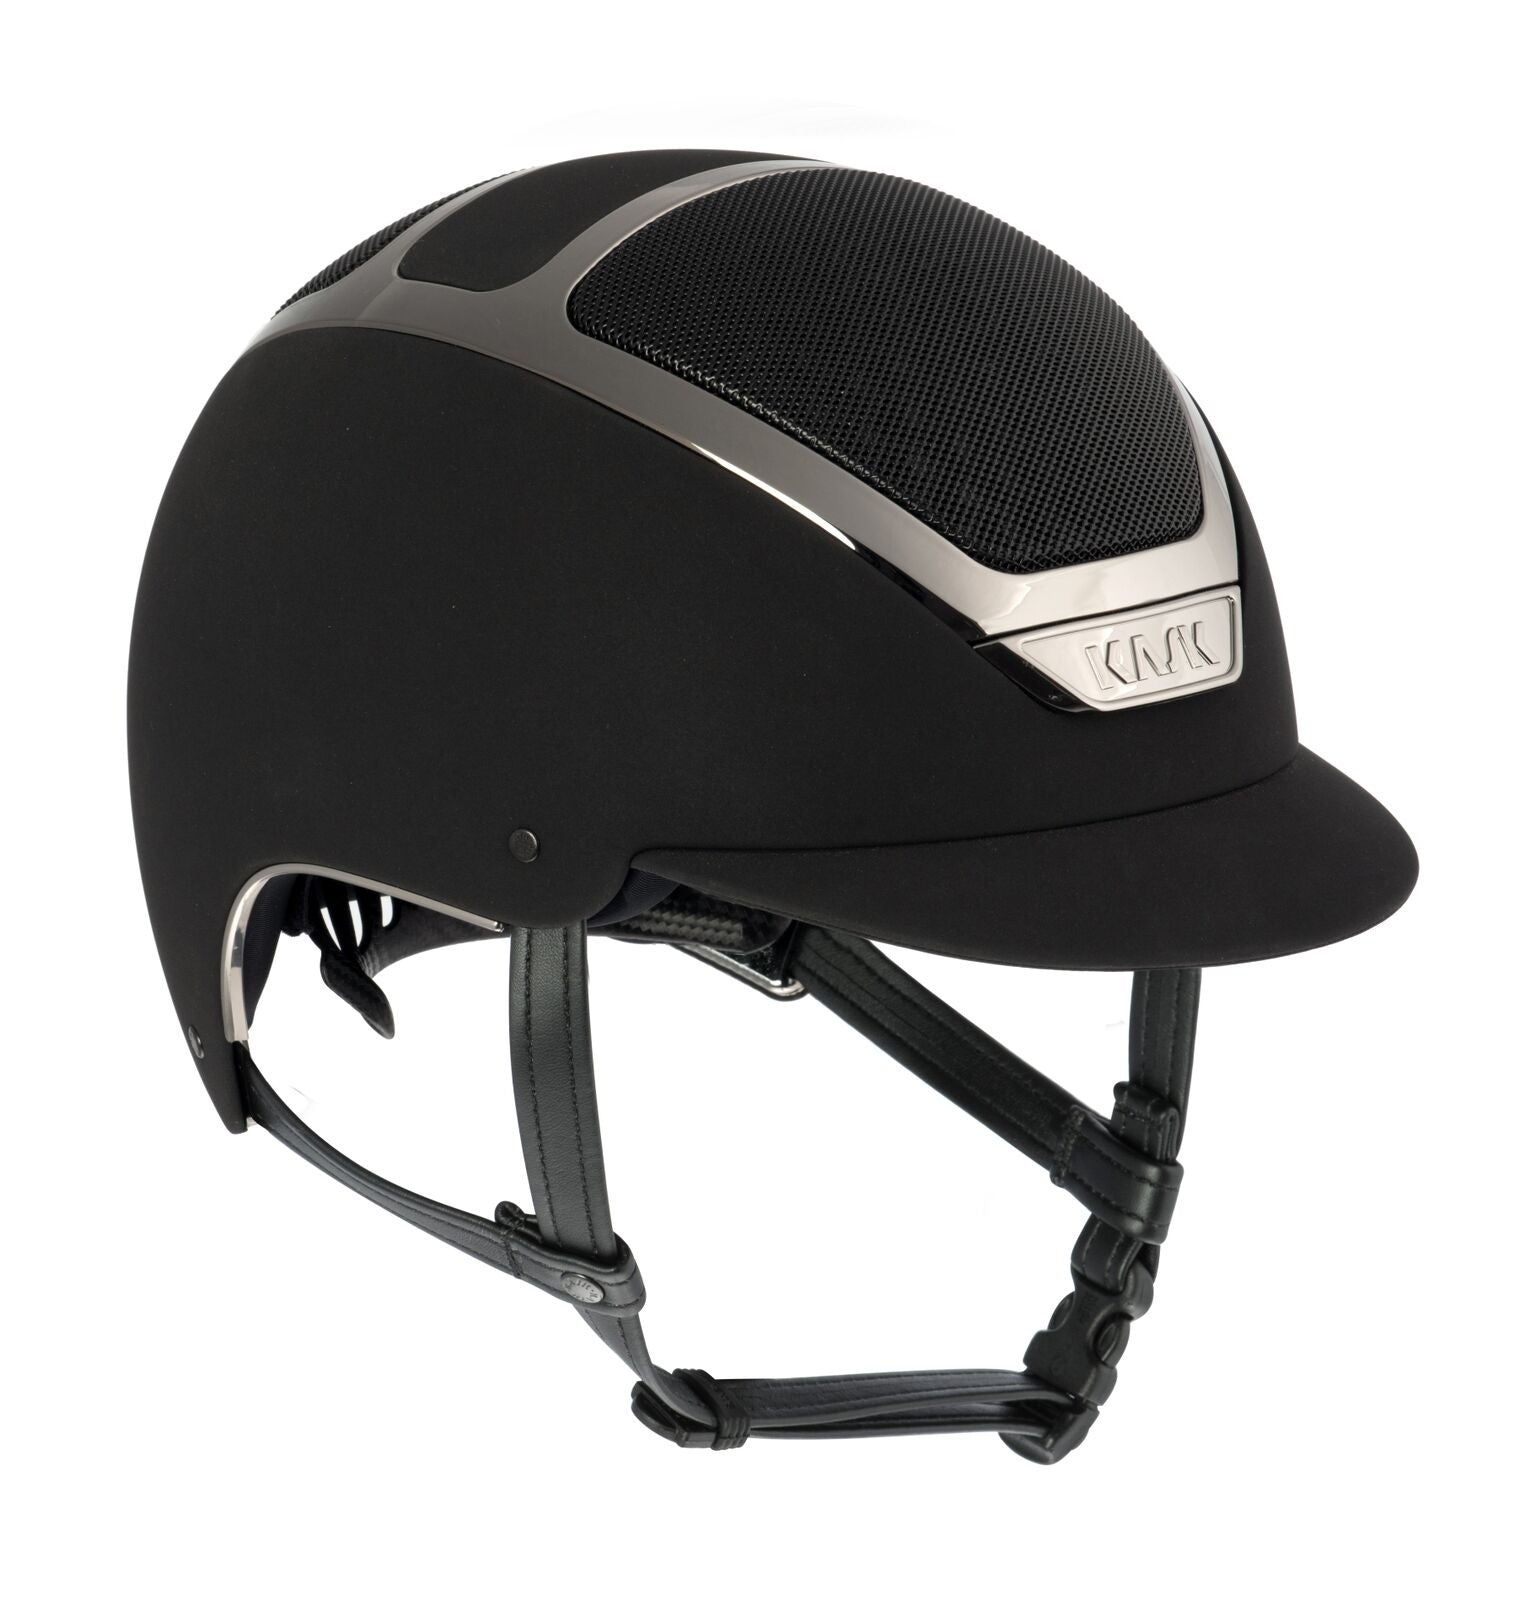 KASK DOGMA CHROME LIGHT - BLACK / SILVER - Divine Equestrian